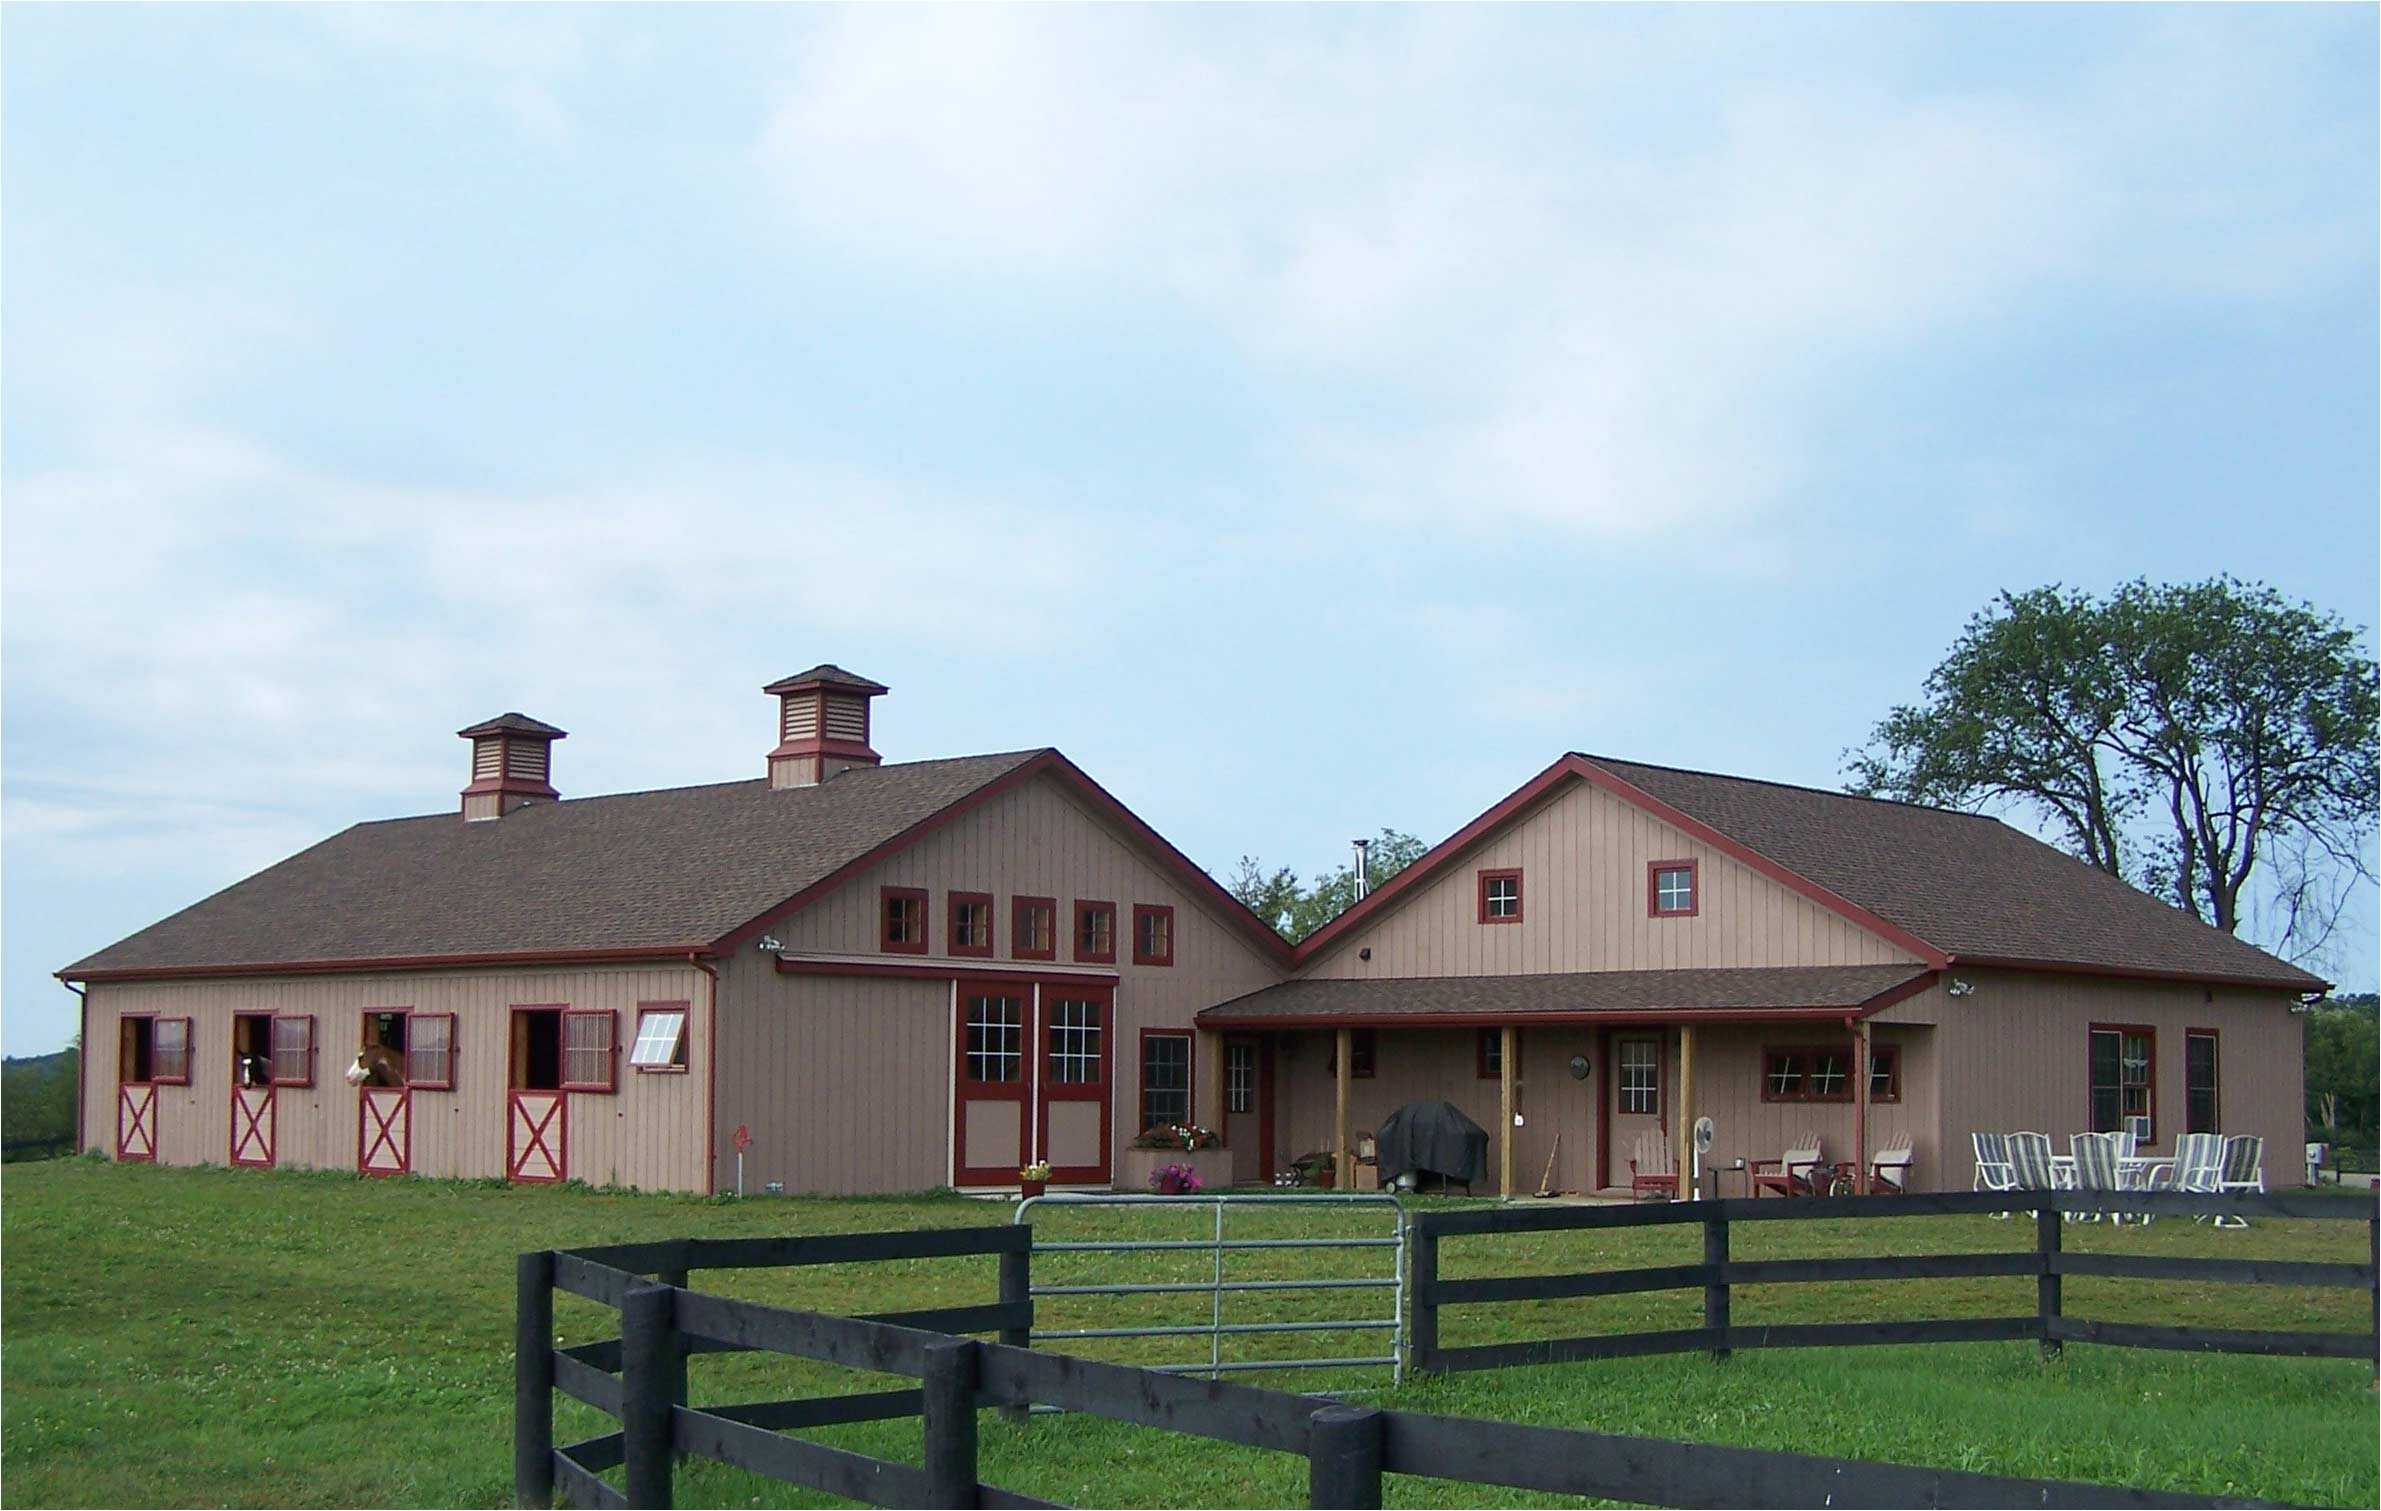 horse barn pictures images wallpapers